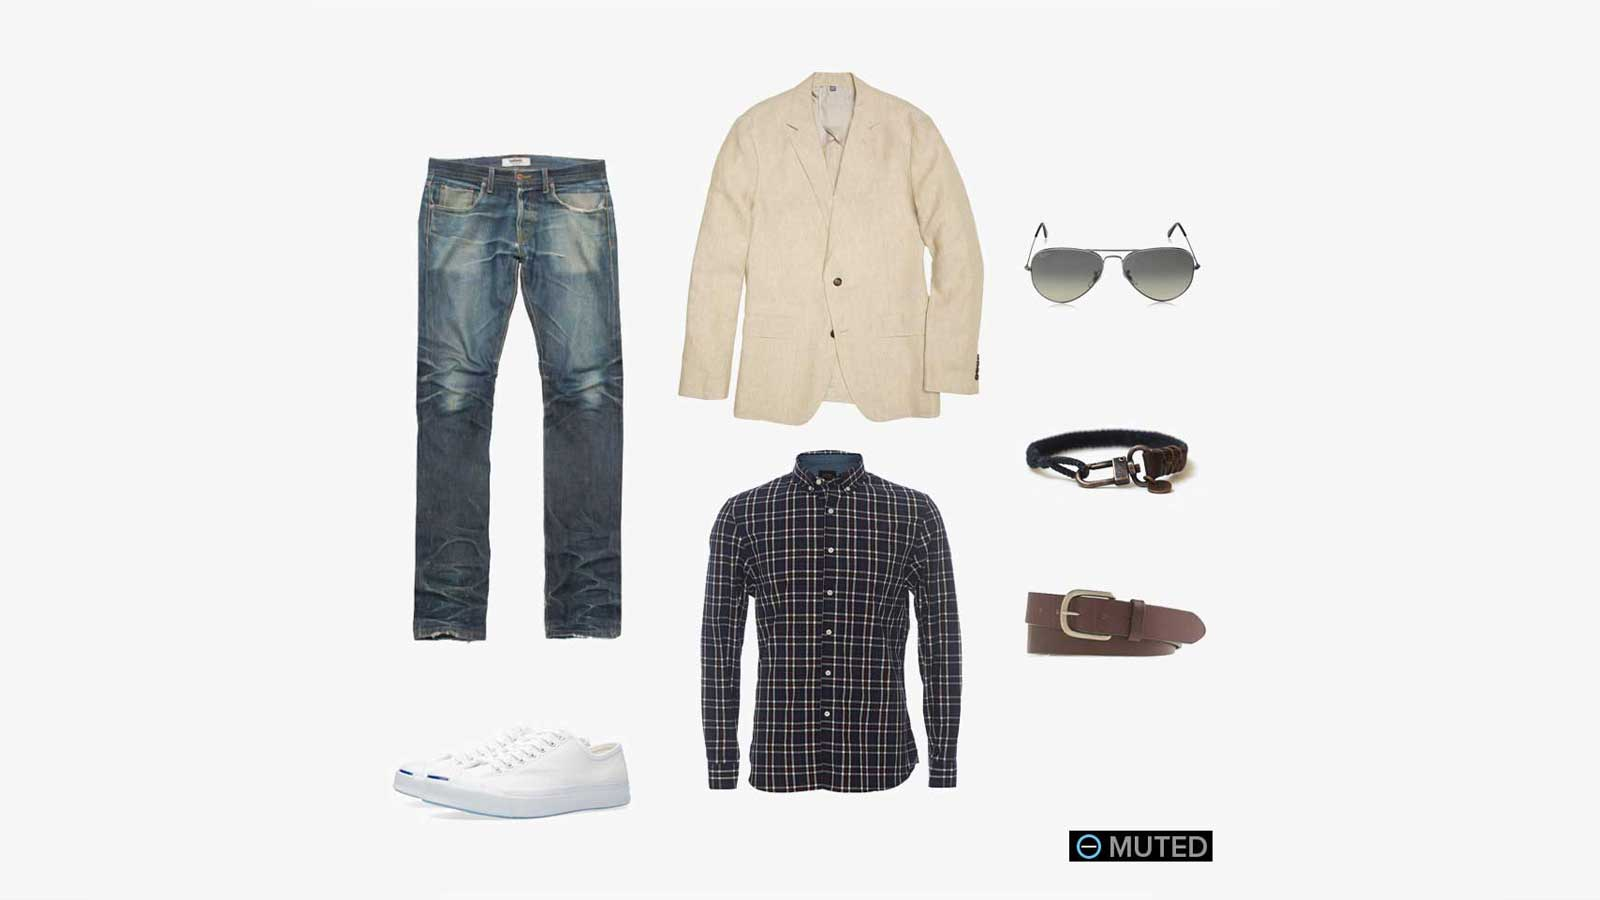 MENS OUTFIT IDEAS #41